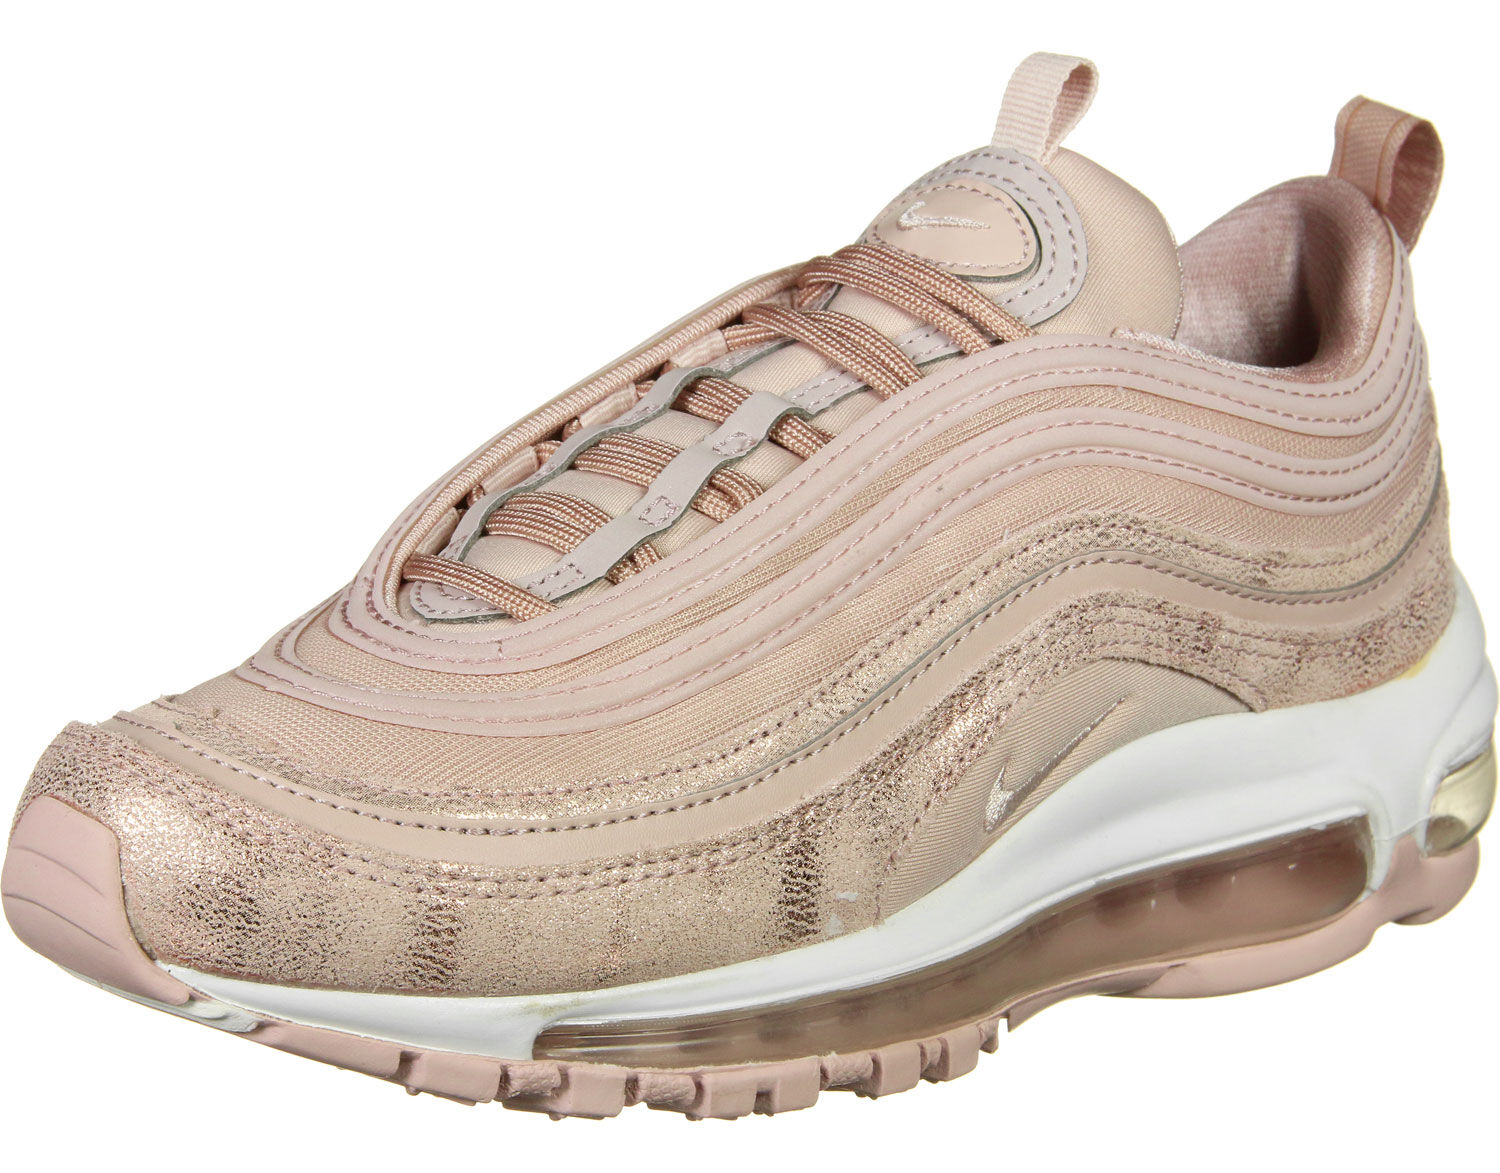 NIKE AIR MAX 97 QS Baskets low Hommes chez Stylefile